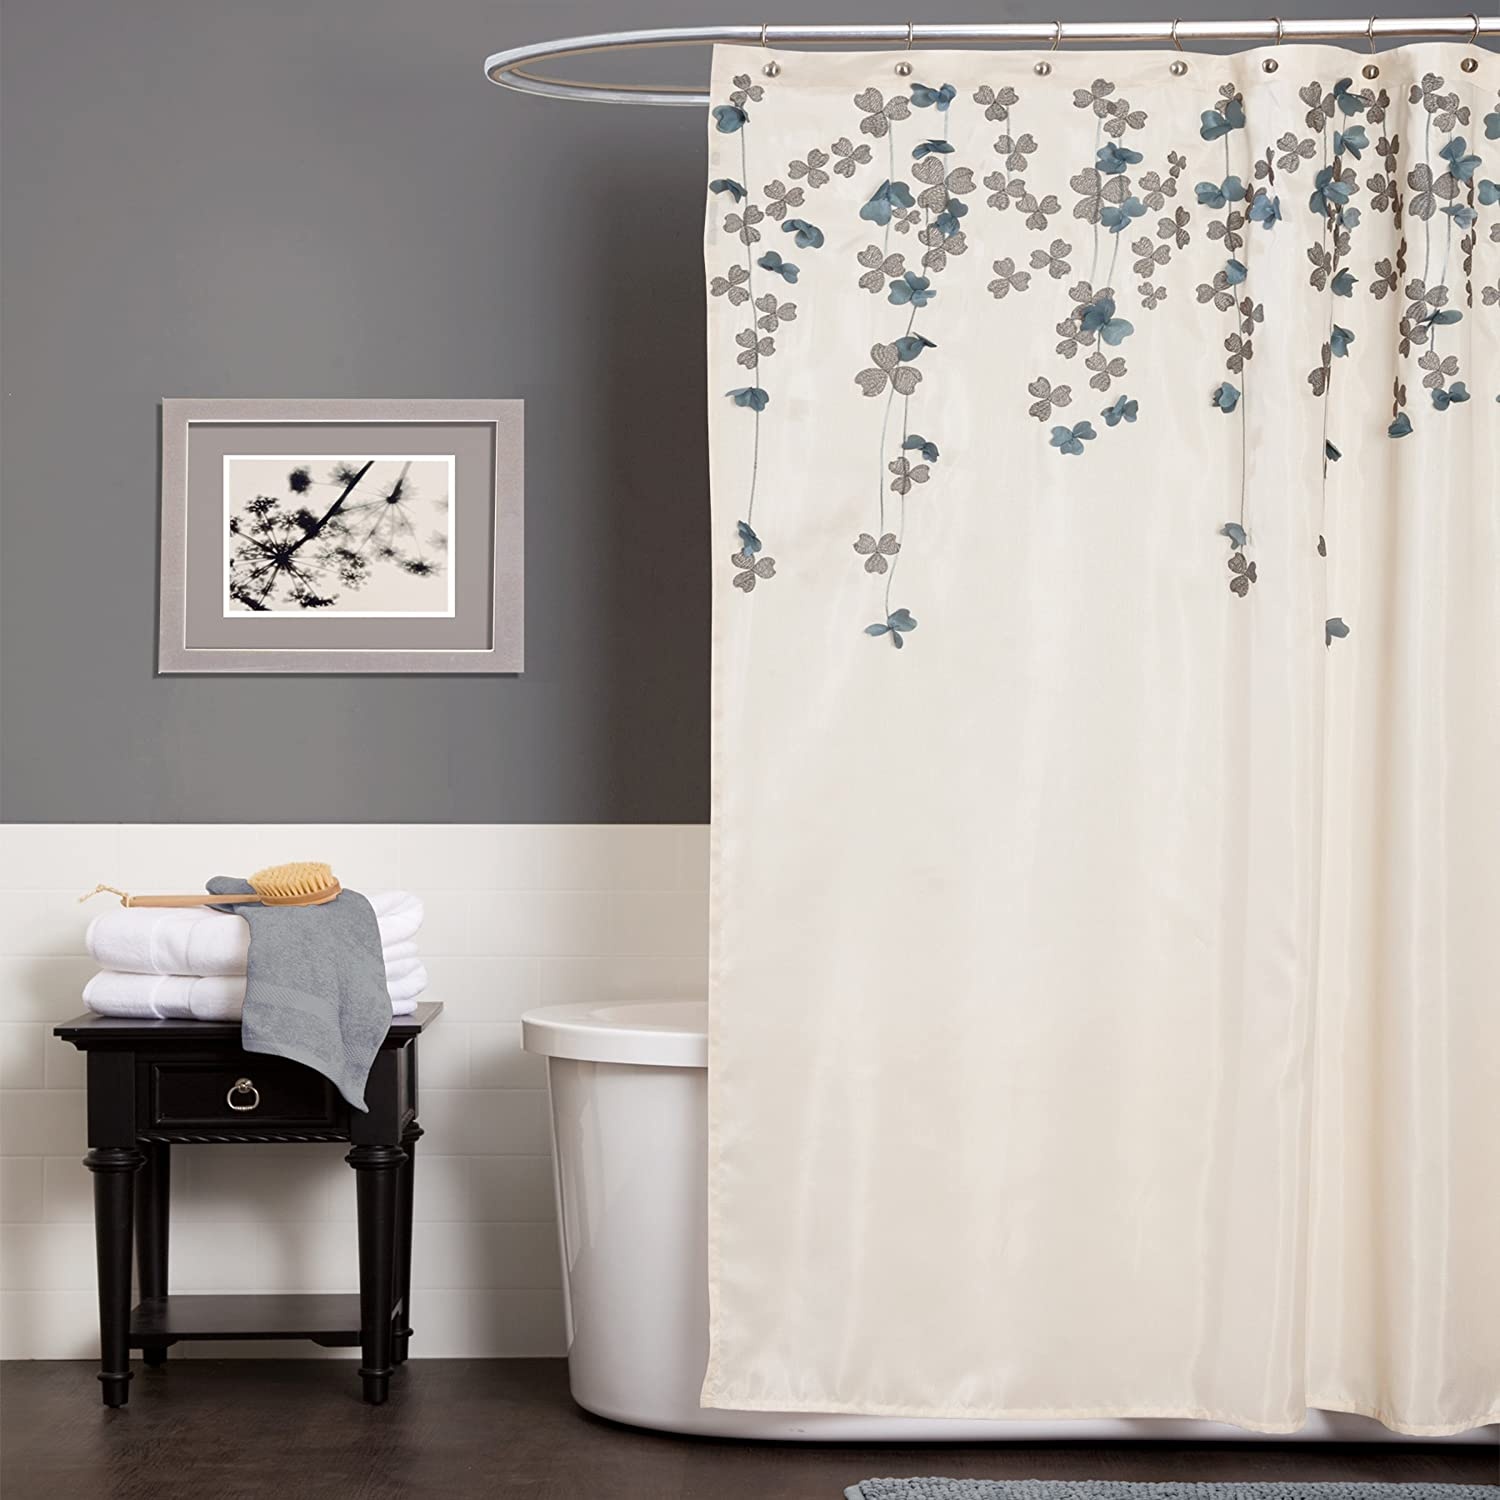 dark grey shower curtain. Amazon com  Lush Decor Flower Drop Shower Curtain 72 Inch by Ivory Blue Home Kitchen